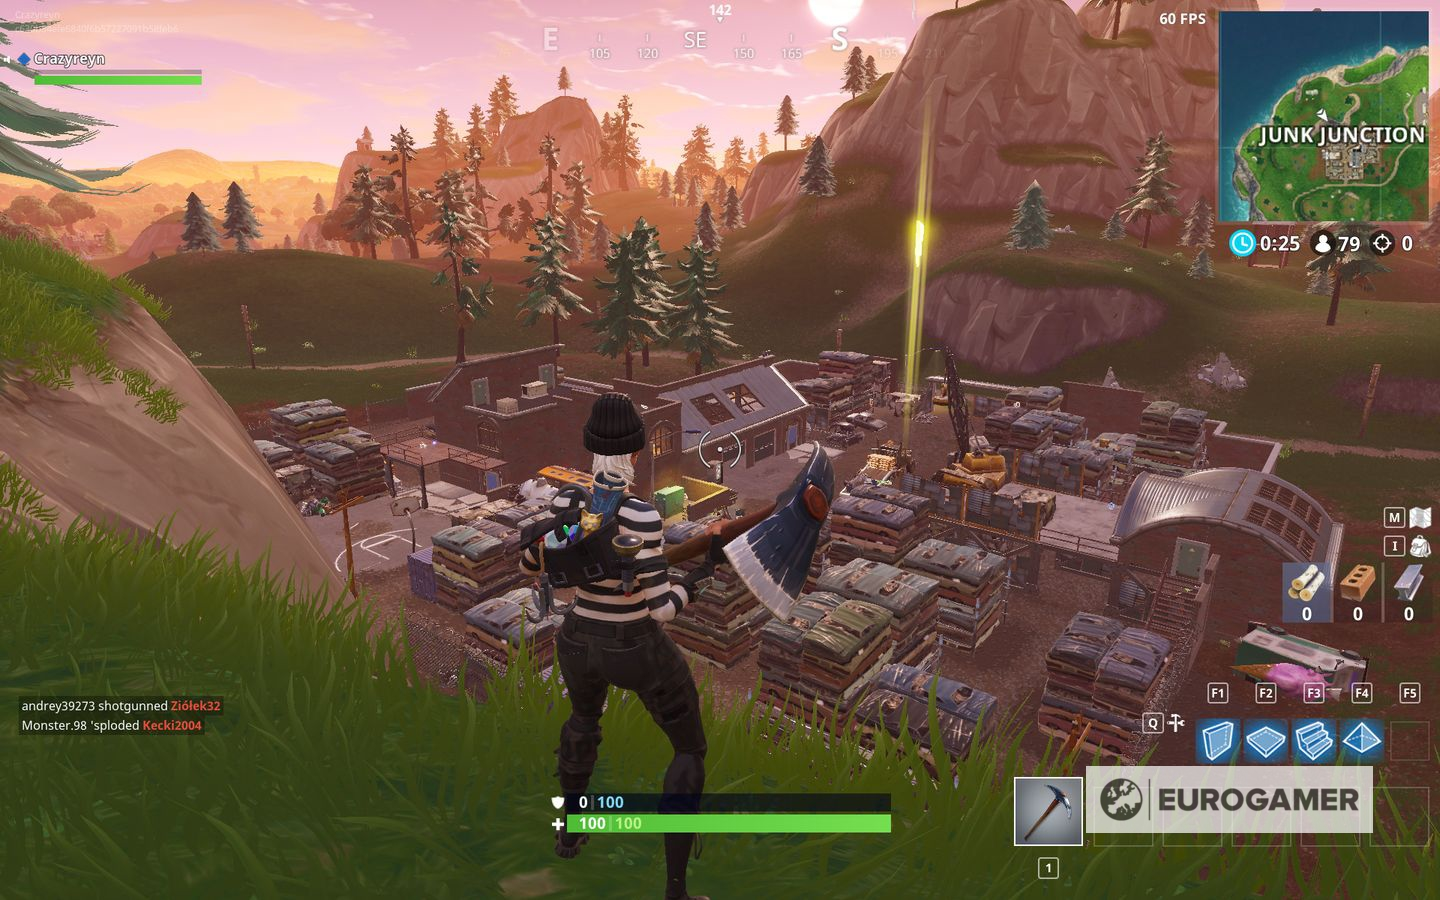 fortnite_lightning_bolt_locations_12